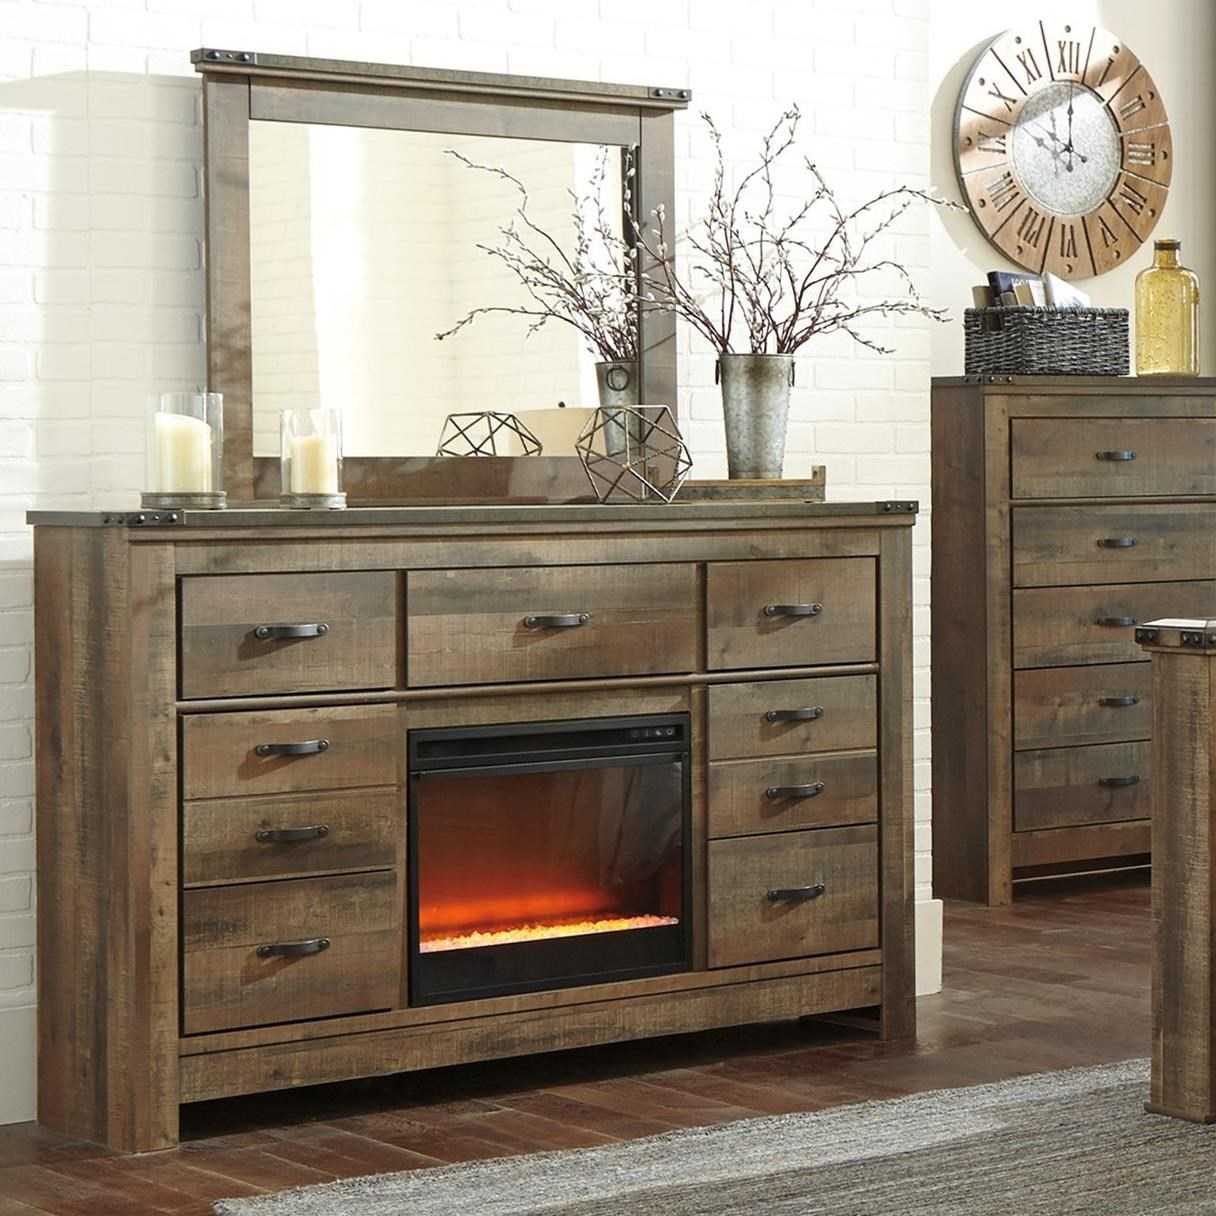 Trinell Dresser with Fireplace Insert & Mirror by Signature Design by Ashley at Northeast Factory Direct